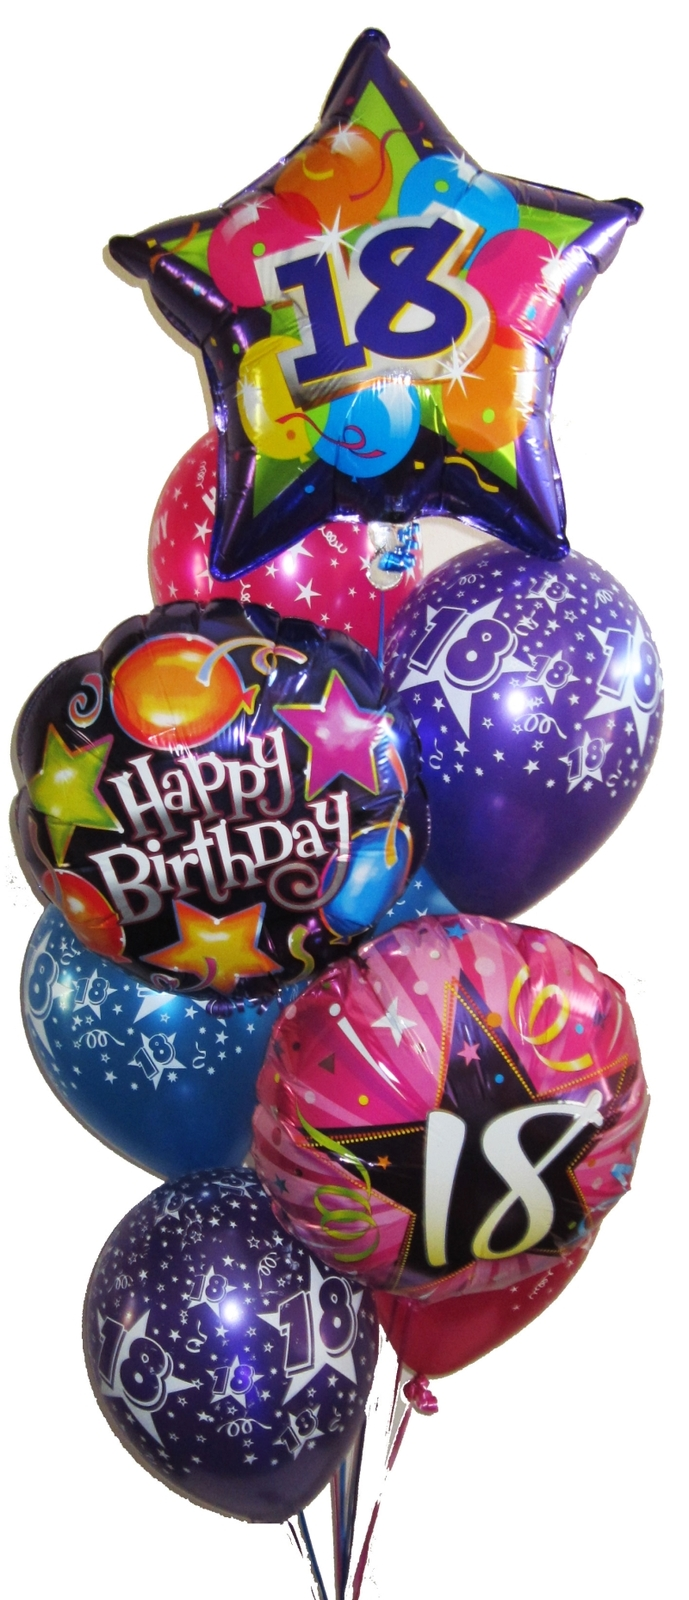 Birthday Balloon Bouquets Helium Balloons Perth Birthday Party Balloons Gifts Same Day